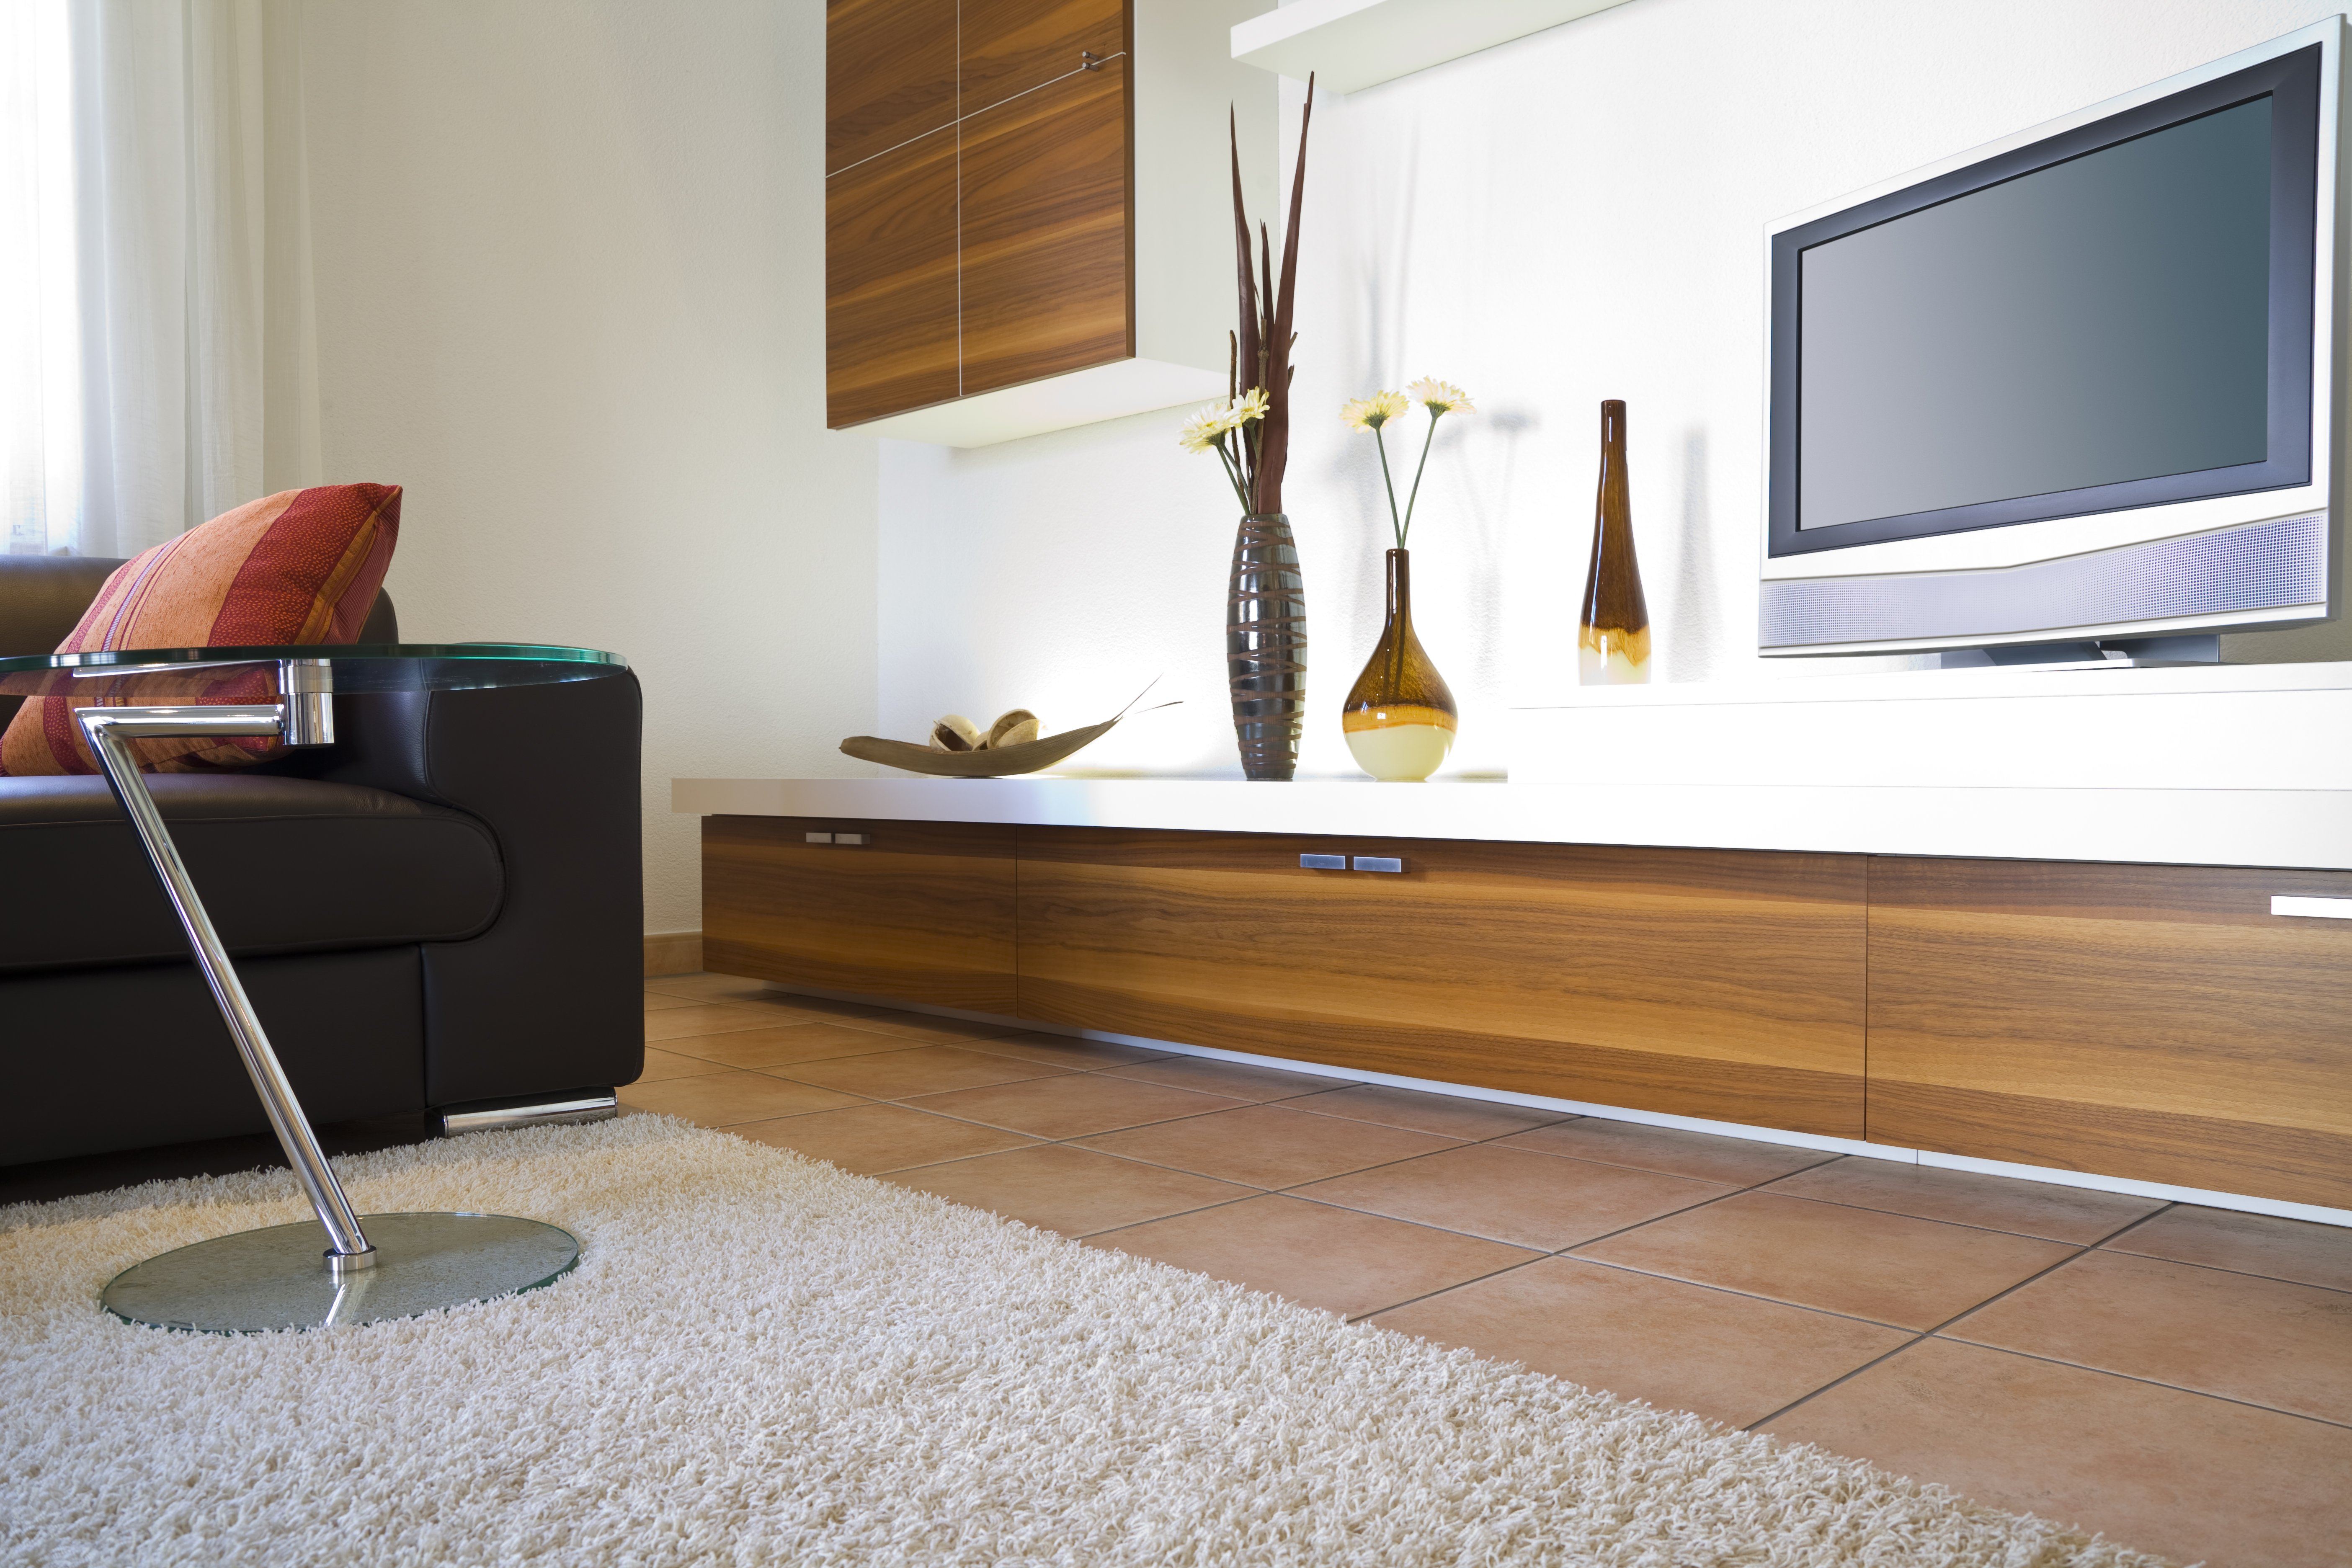 Carpet and furnished interiors